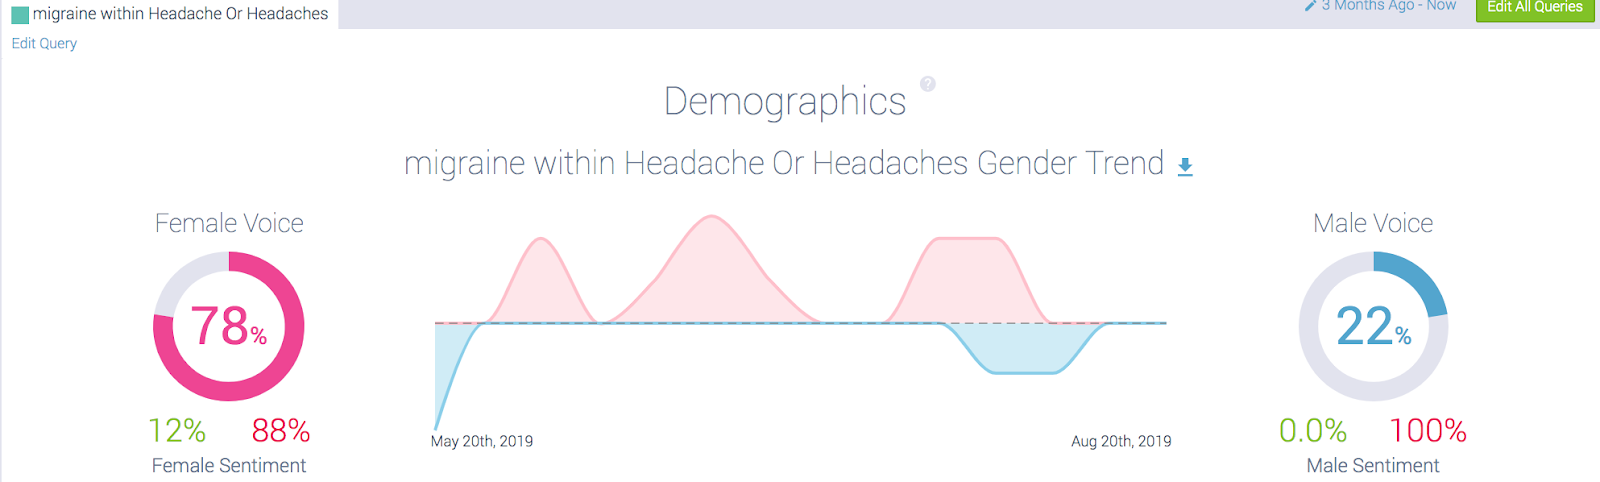 gender demographic sentiment analysis for migraine sufferers